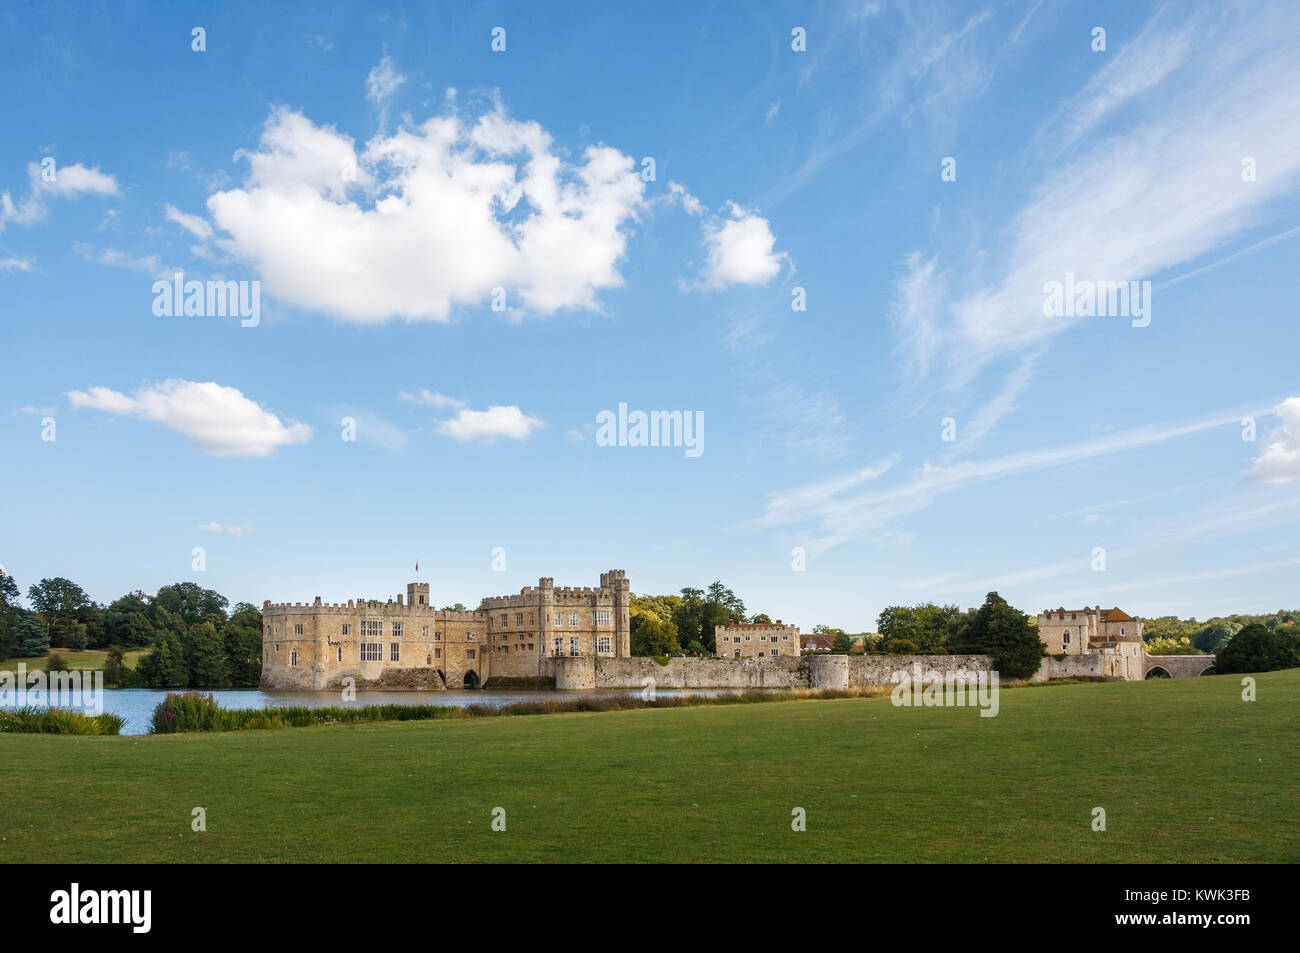 Panoramic view of the exterior of Leeds Castle and moat, near Maidstone, Kent, southeast England, UK on a sunny - Stock Image